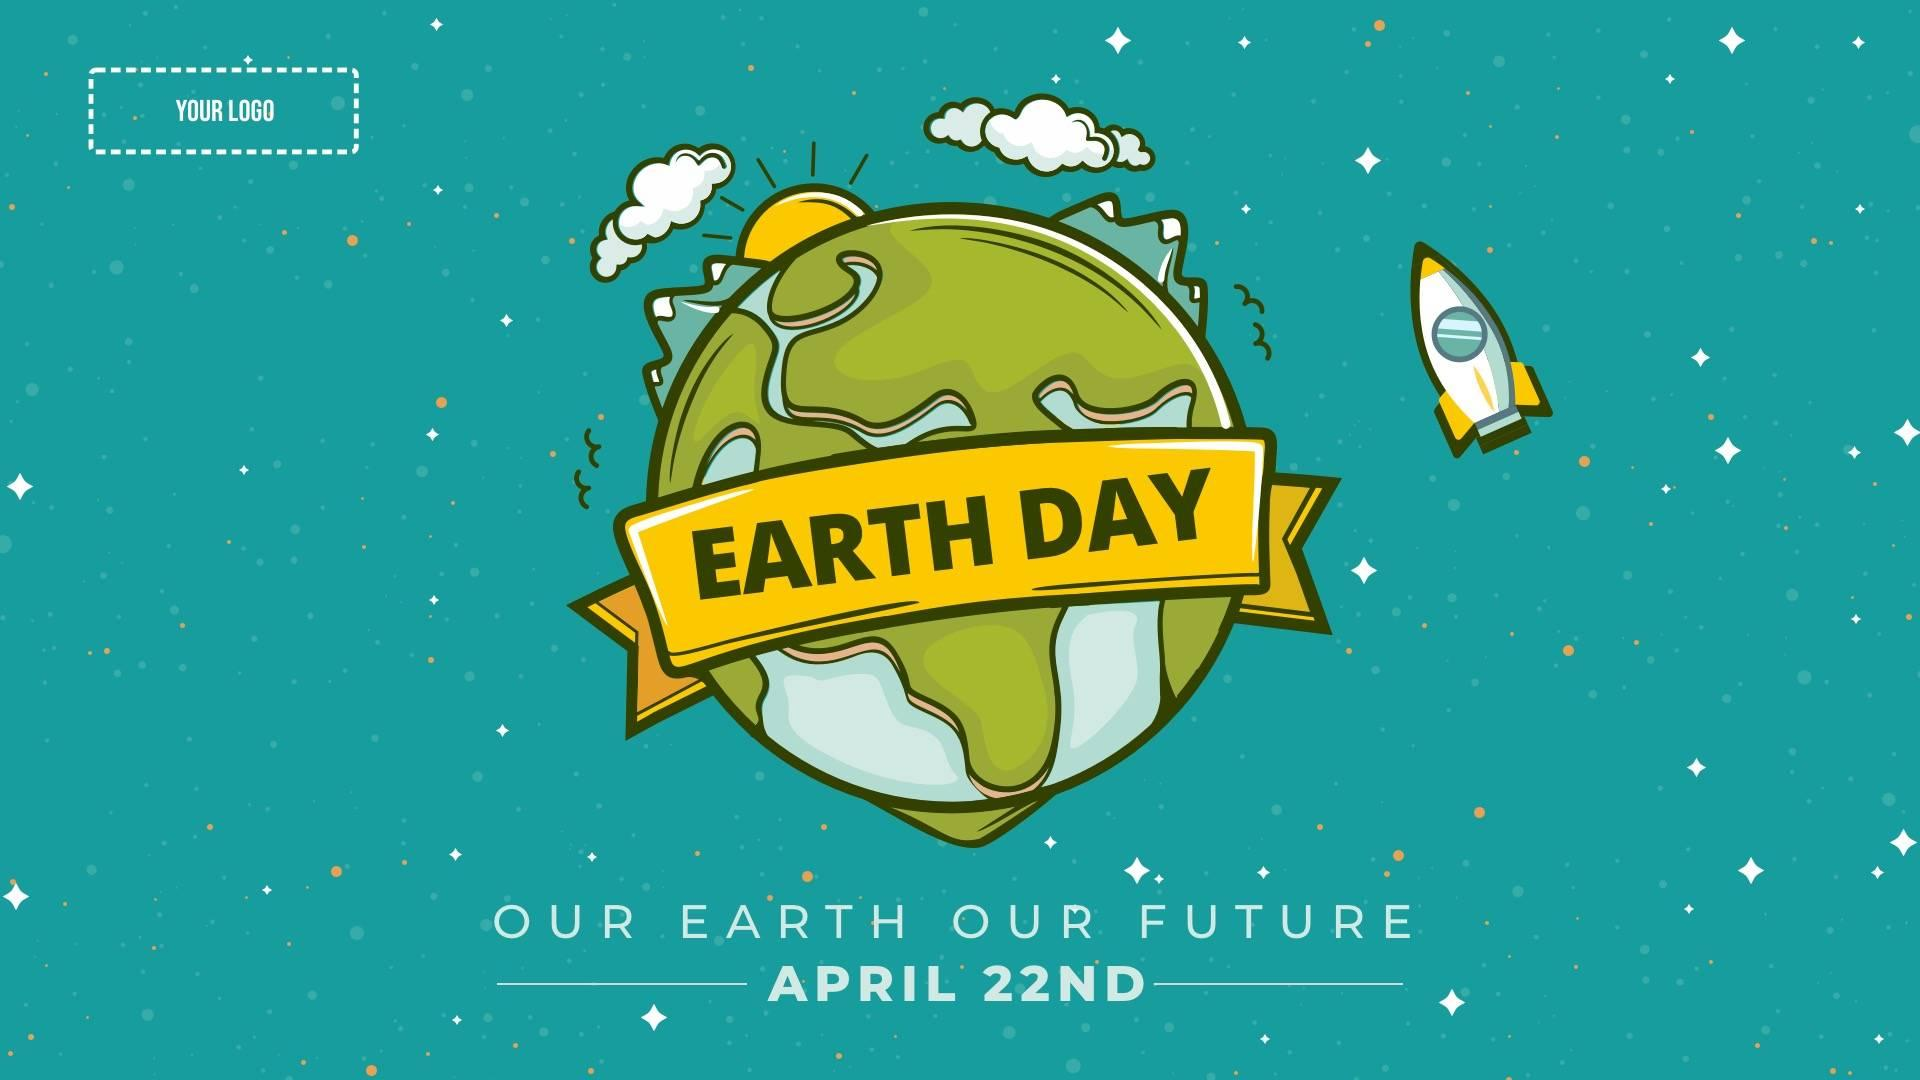 Earth Day Digital Signage Template